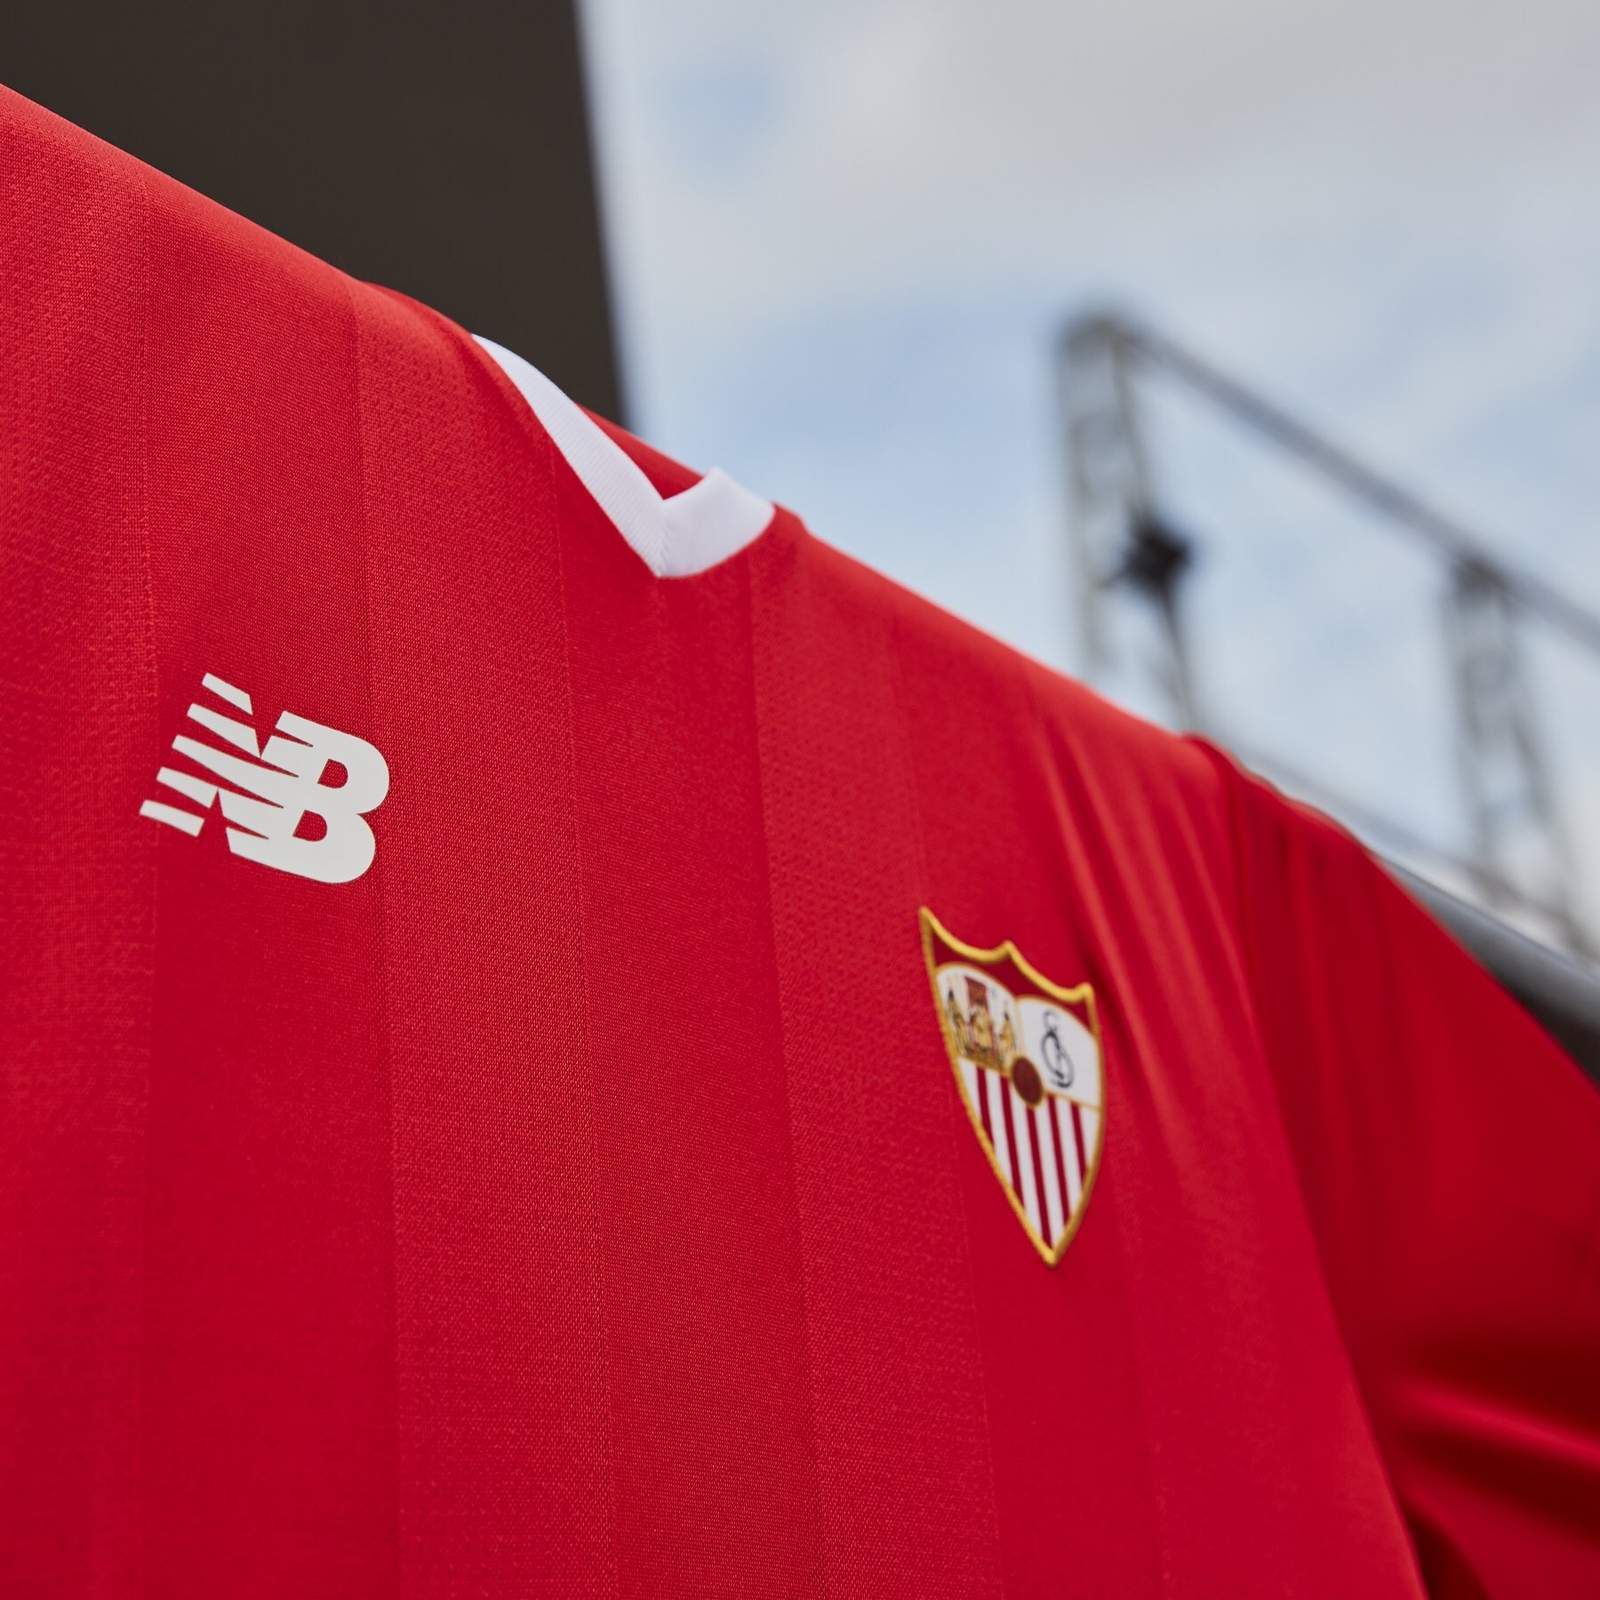 sevilla-17-18-kits-away-banner